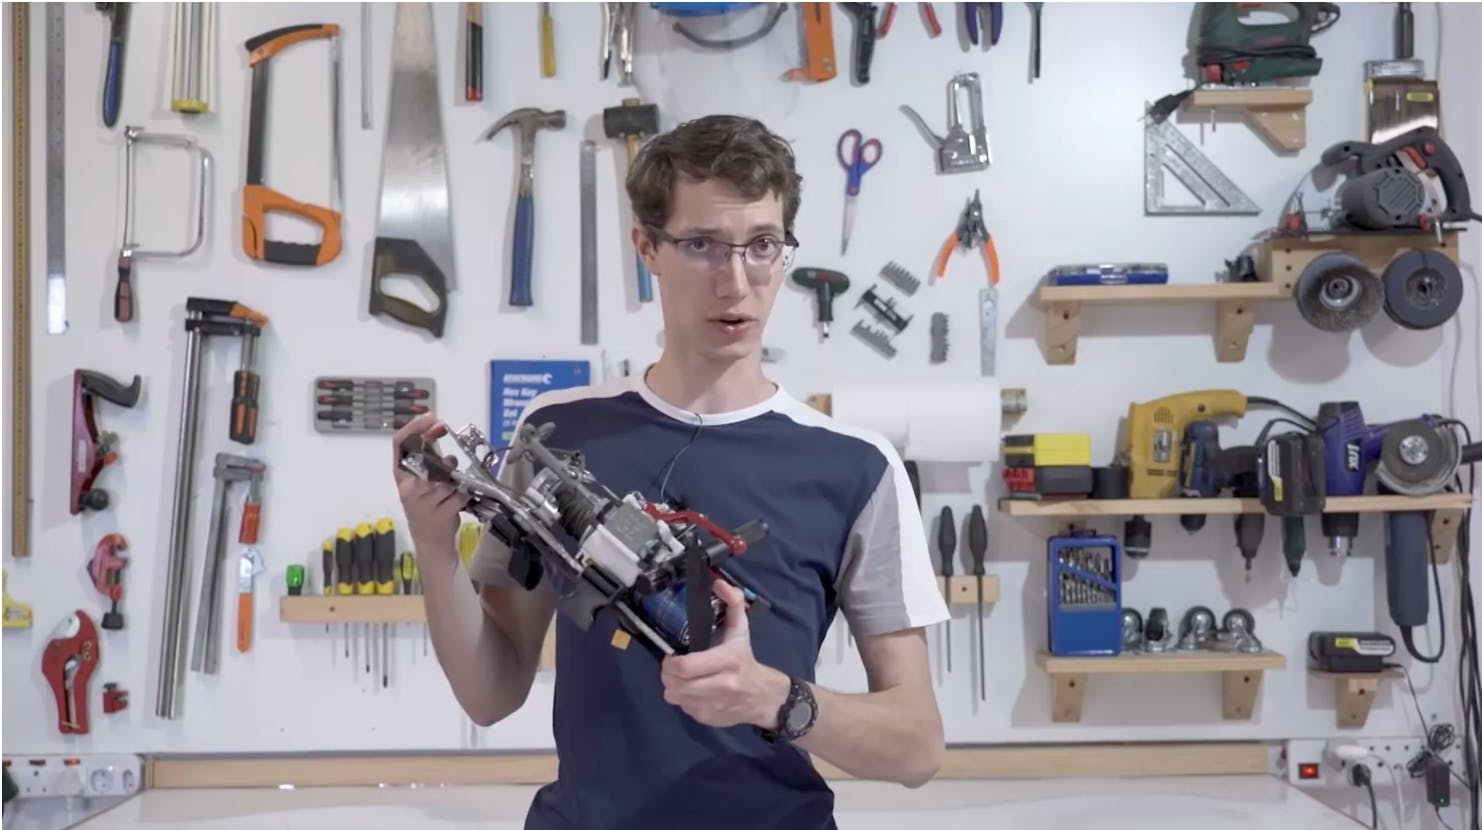 a Youtuber named JT has prototyped a fully functional grappling gun